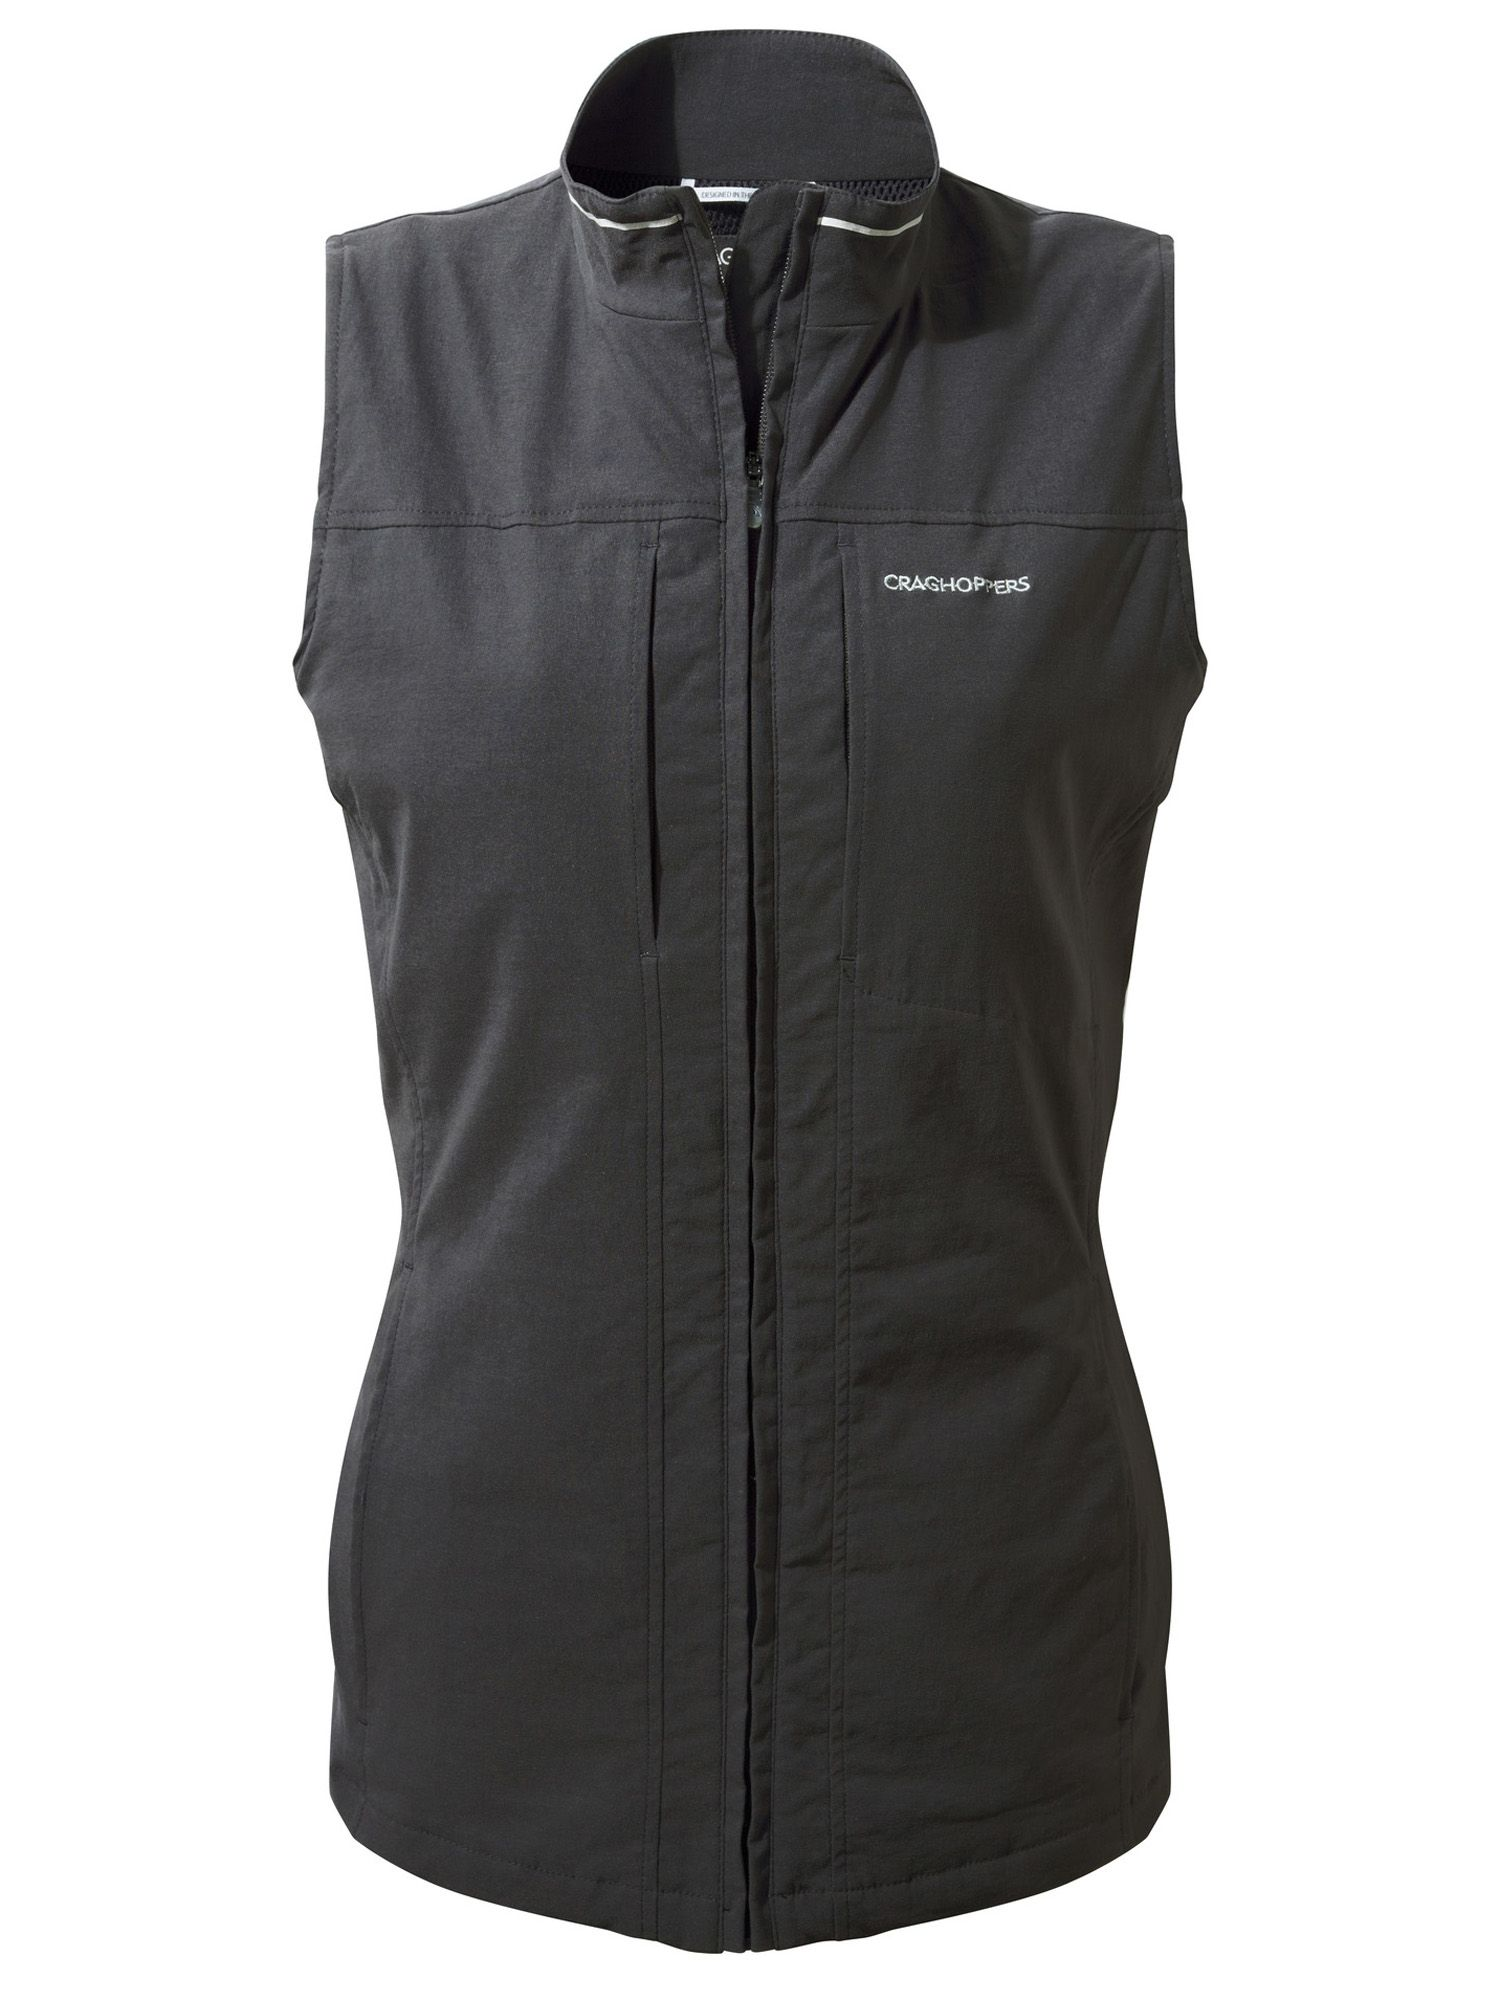 Craghoppers NosiLife Dainely Gilet, Grey